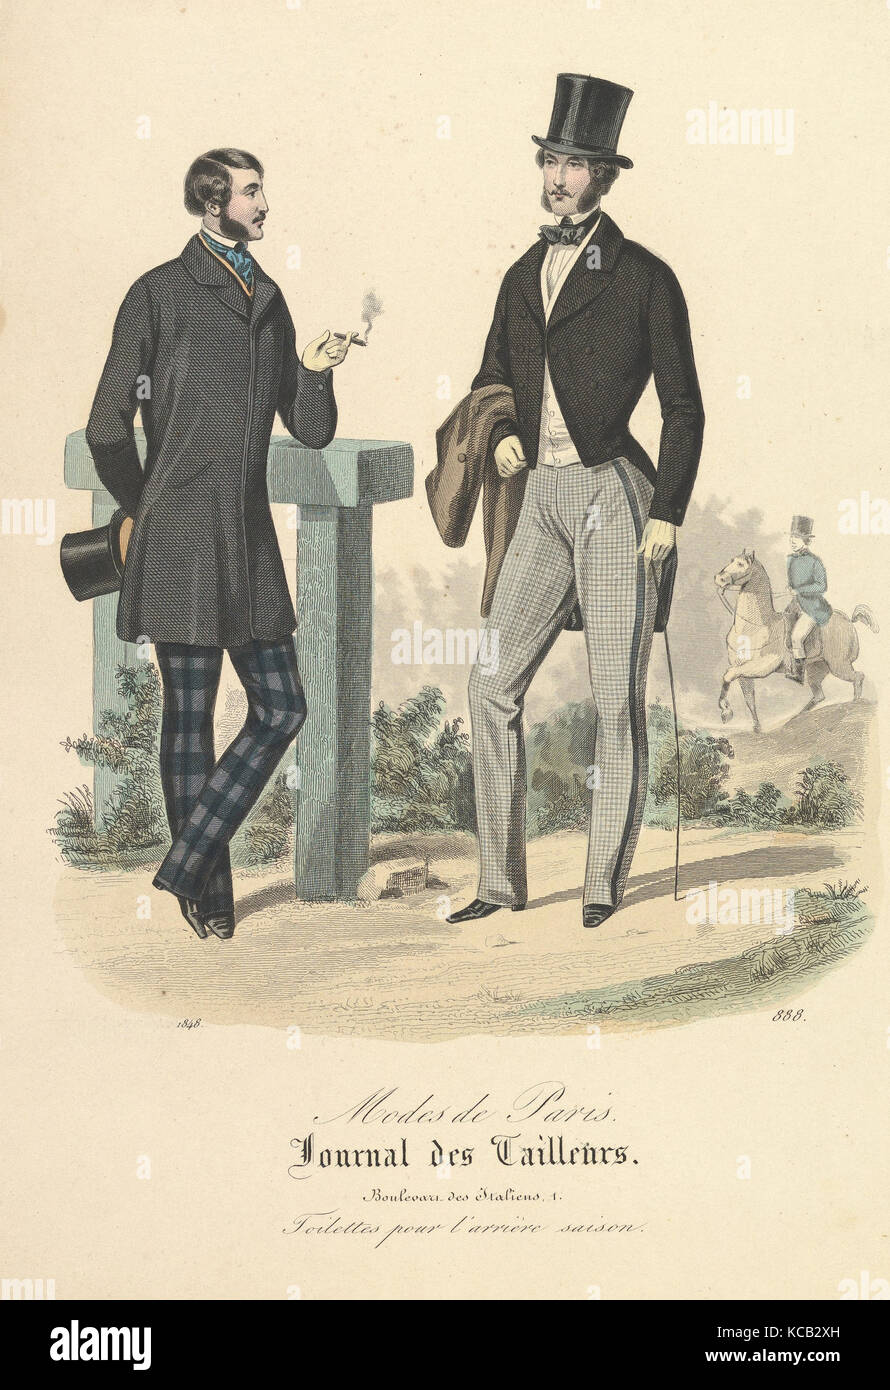 888 from Modes de Paris, Journal des Tailleurs, Anonymous, French, 19th century, 1848 - Stock Image